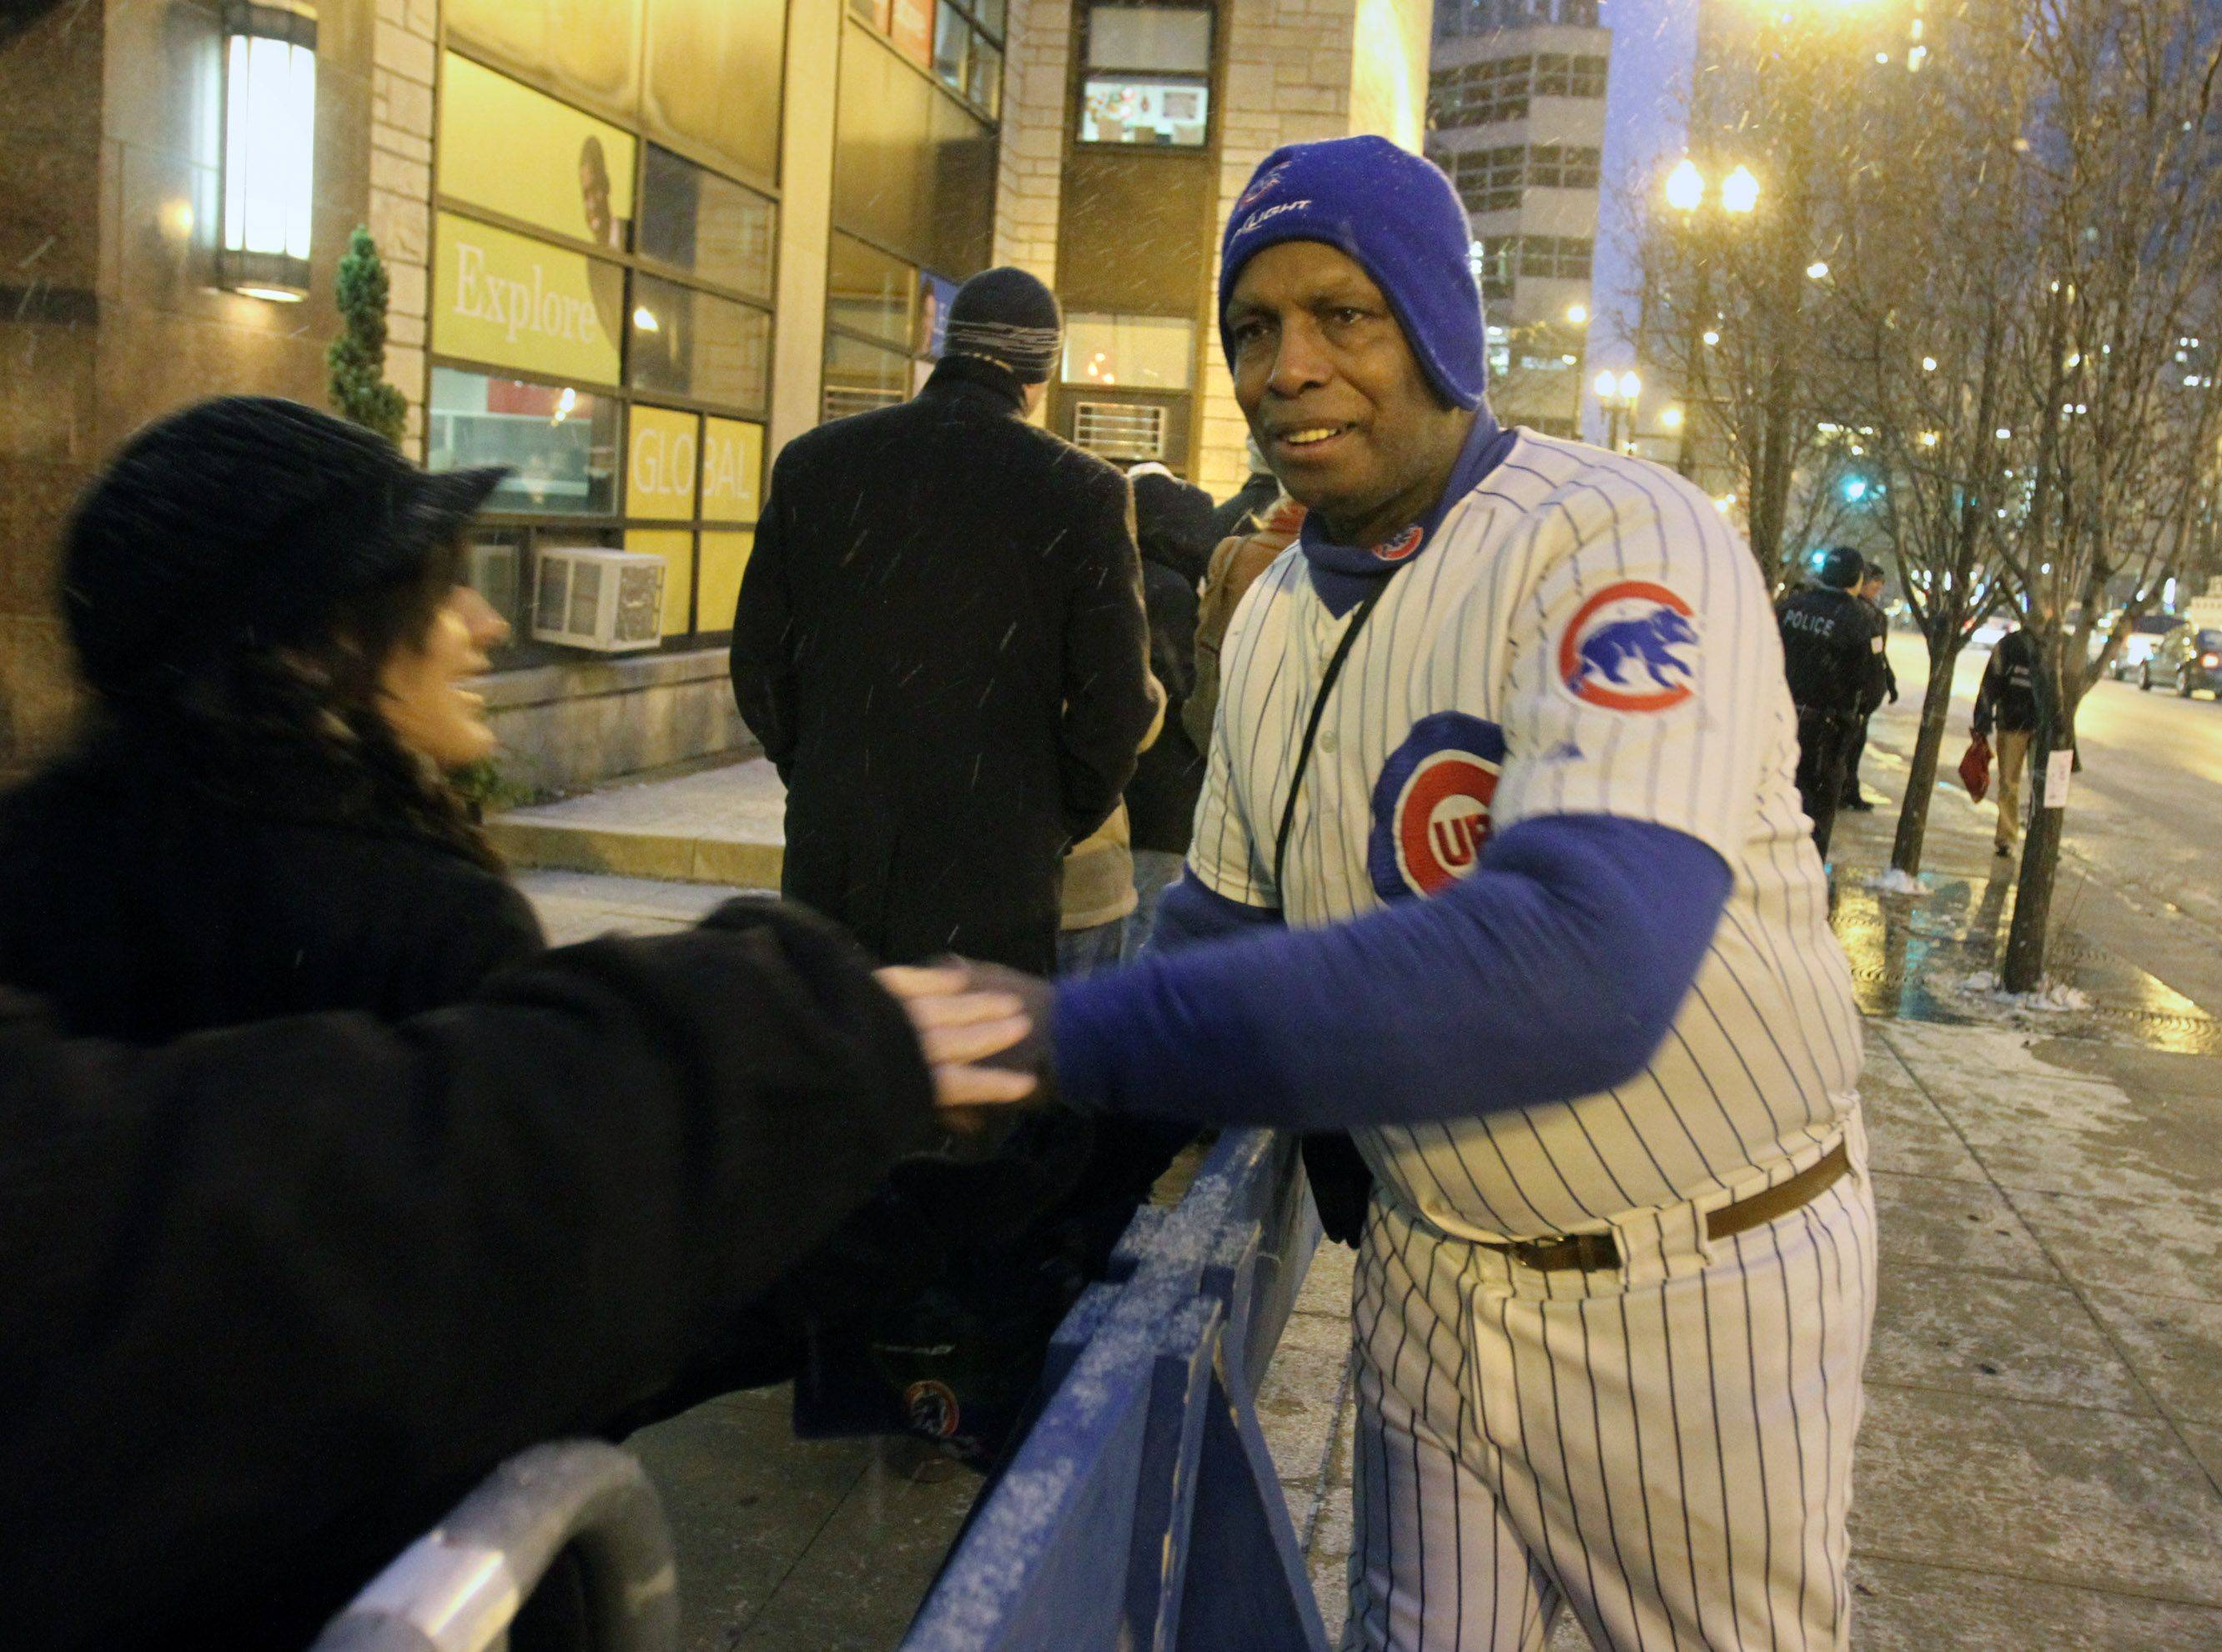 Ronnie Woo-Woo greets Chicago Cubs fans on State Street.